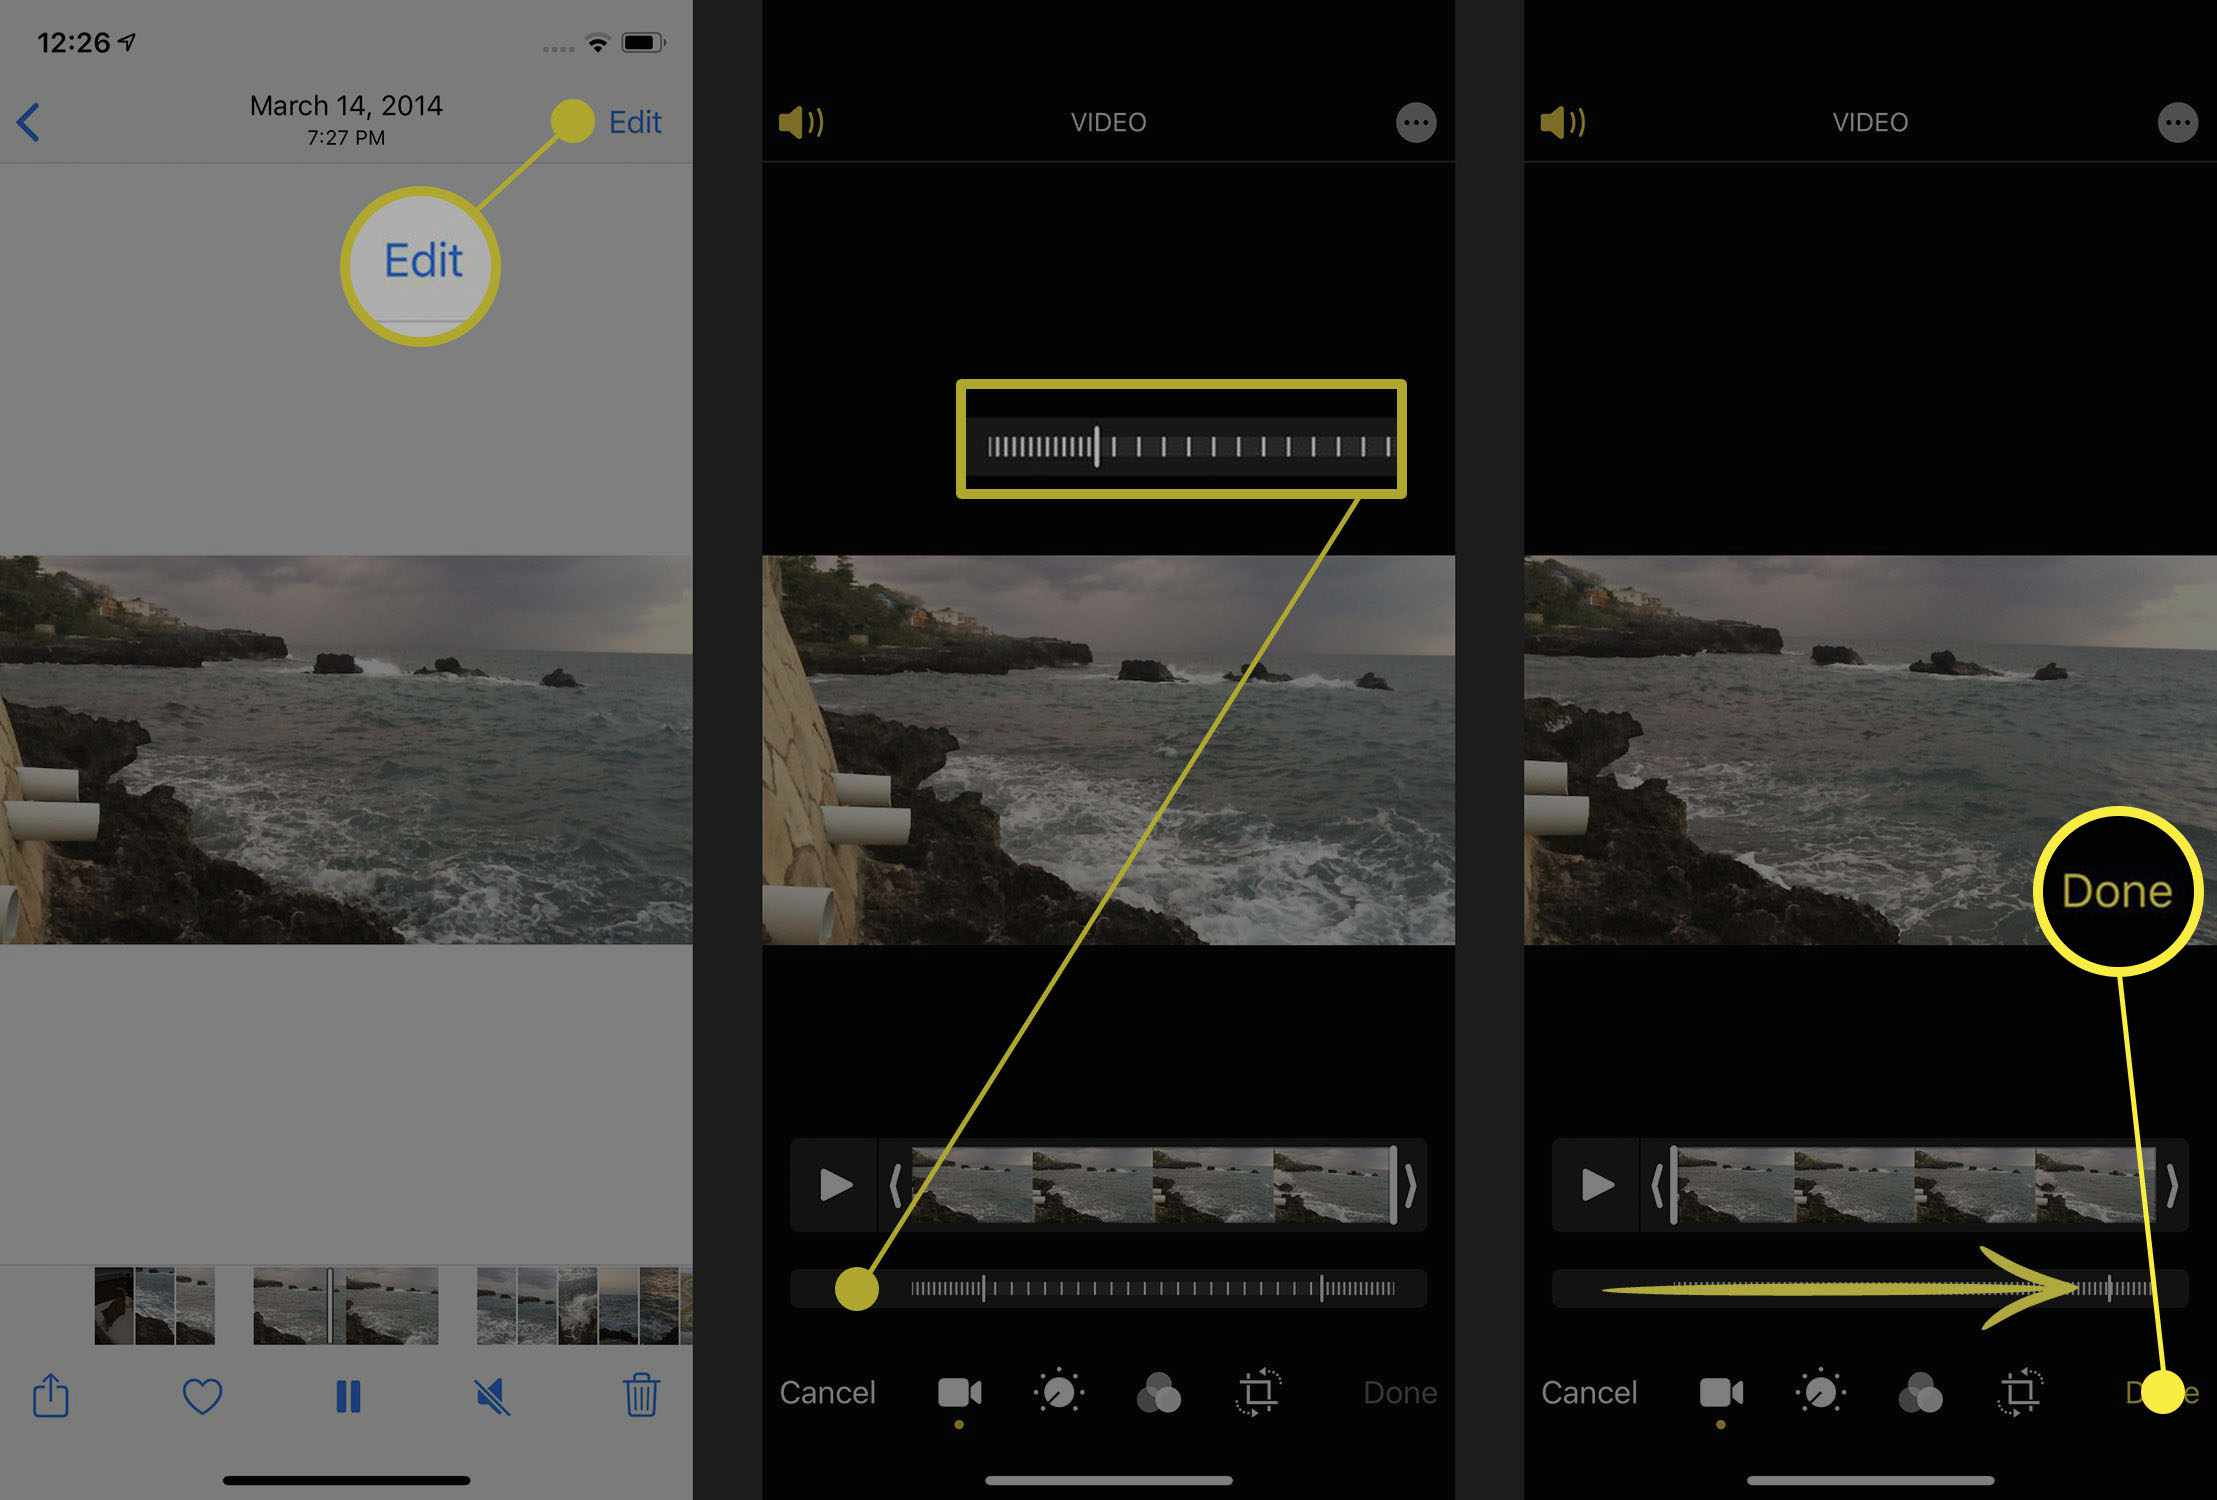 Screenshots of speeding up slo-mo videos in the iPhone Photos app.